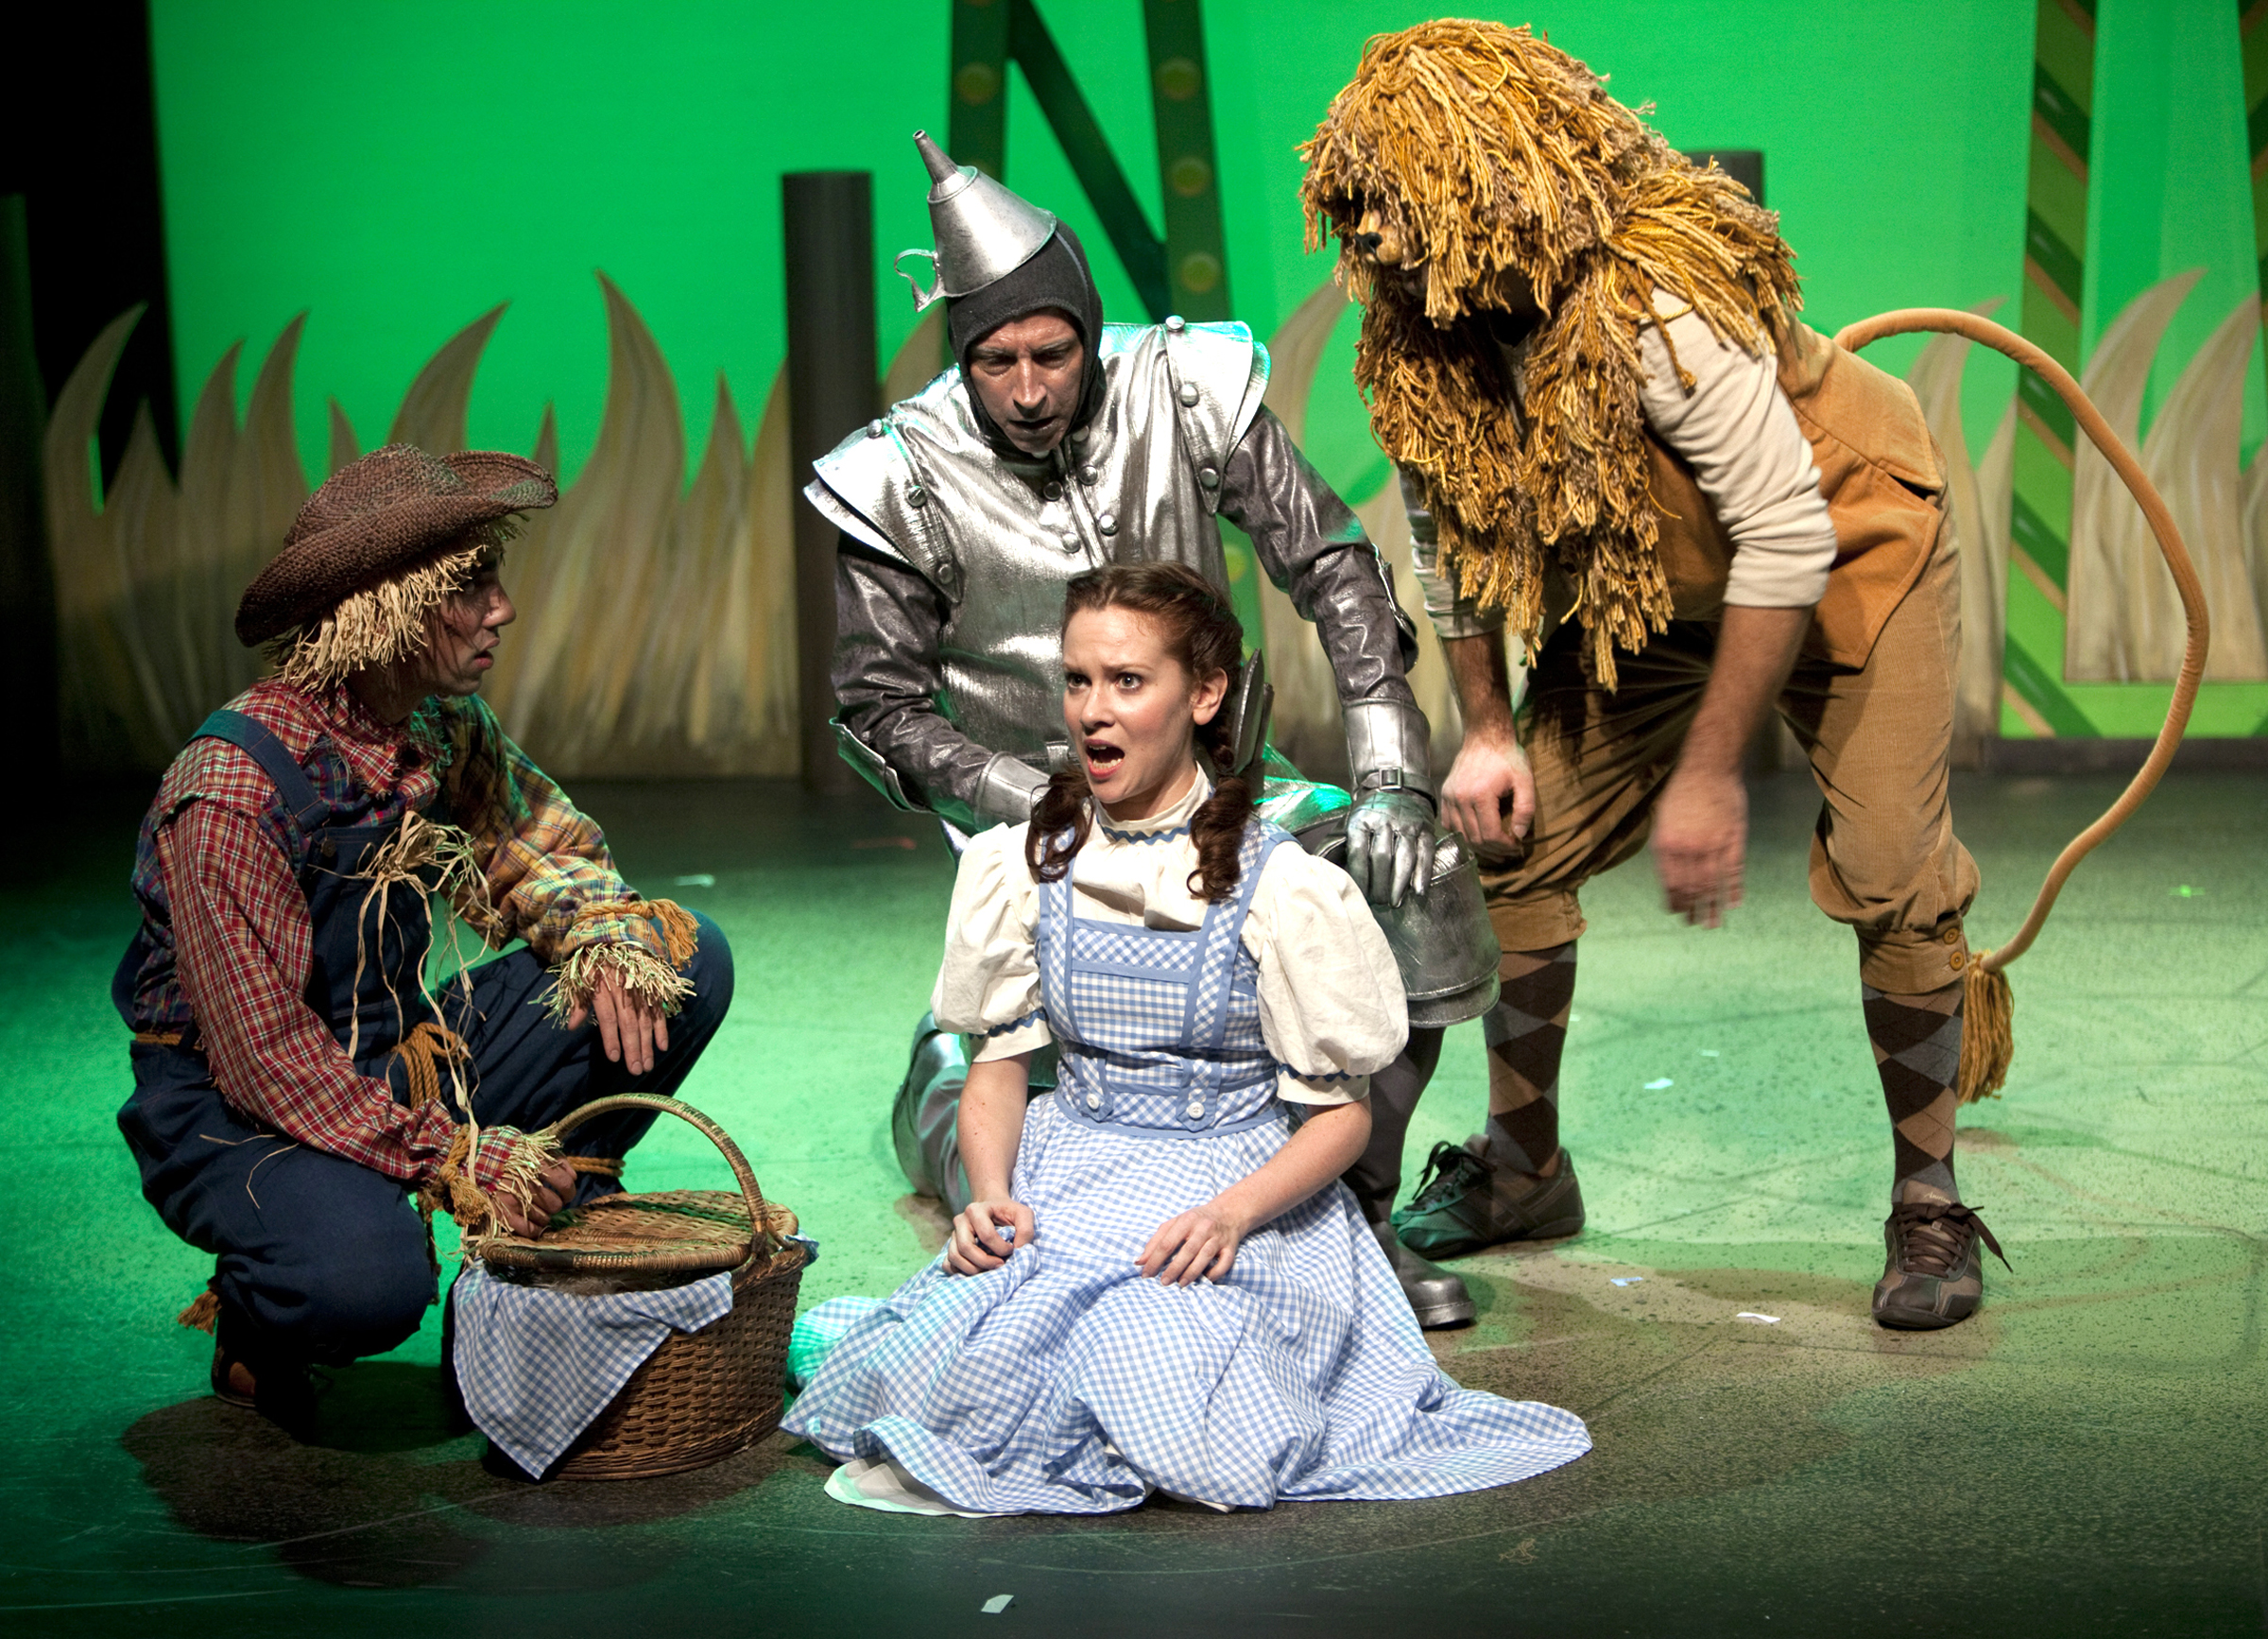 Carousel's Oz was a pleasure from beginning to end, for adults as well as ...